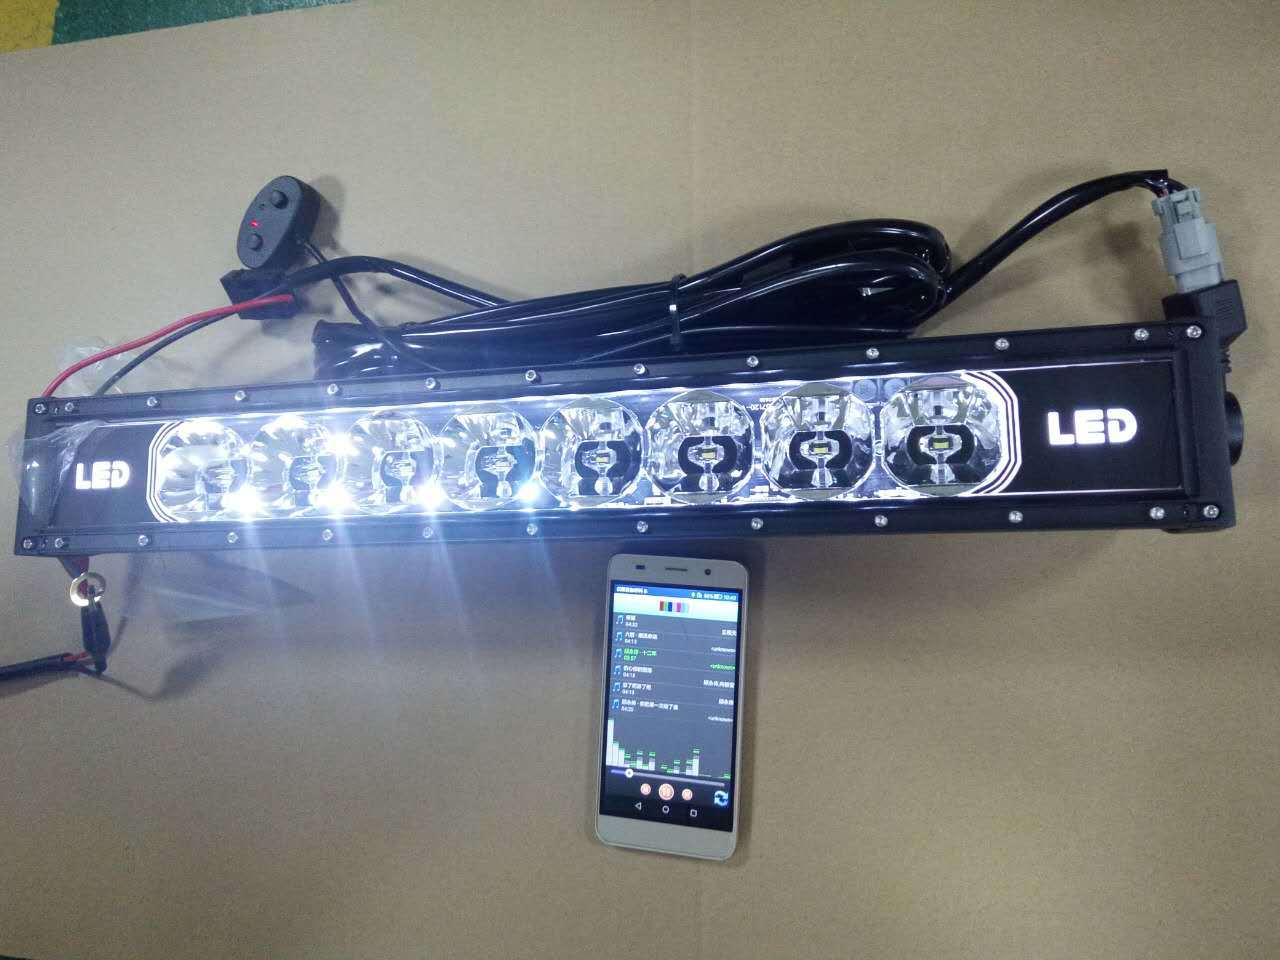 hight resolution of 22 120w rgb led light bar 7d work lamp bluetooth app wire harness led light bar